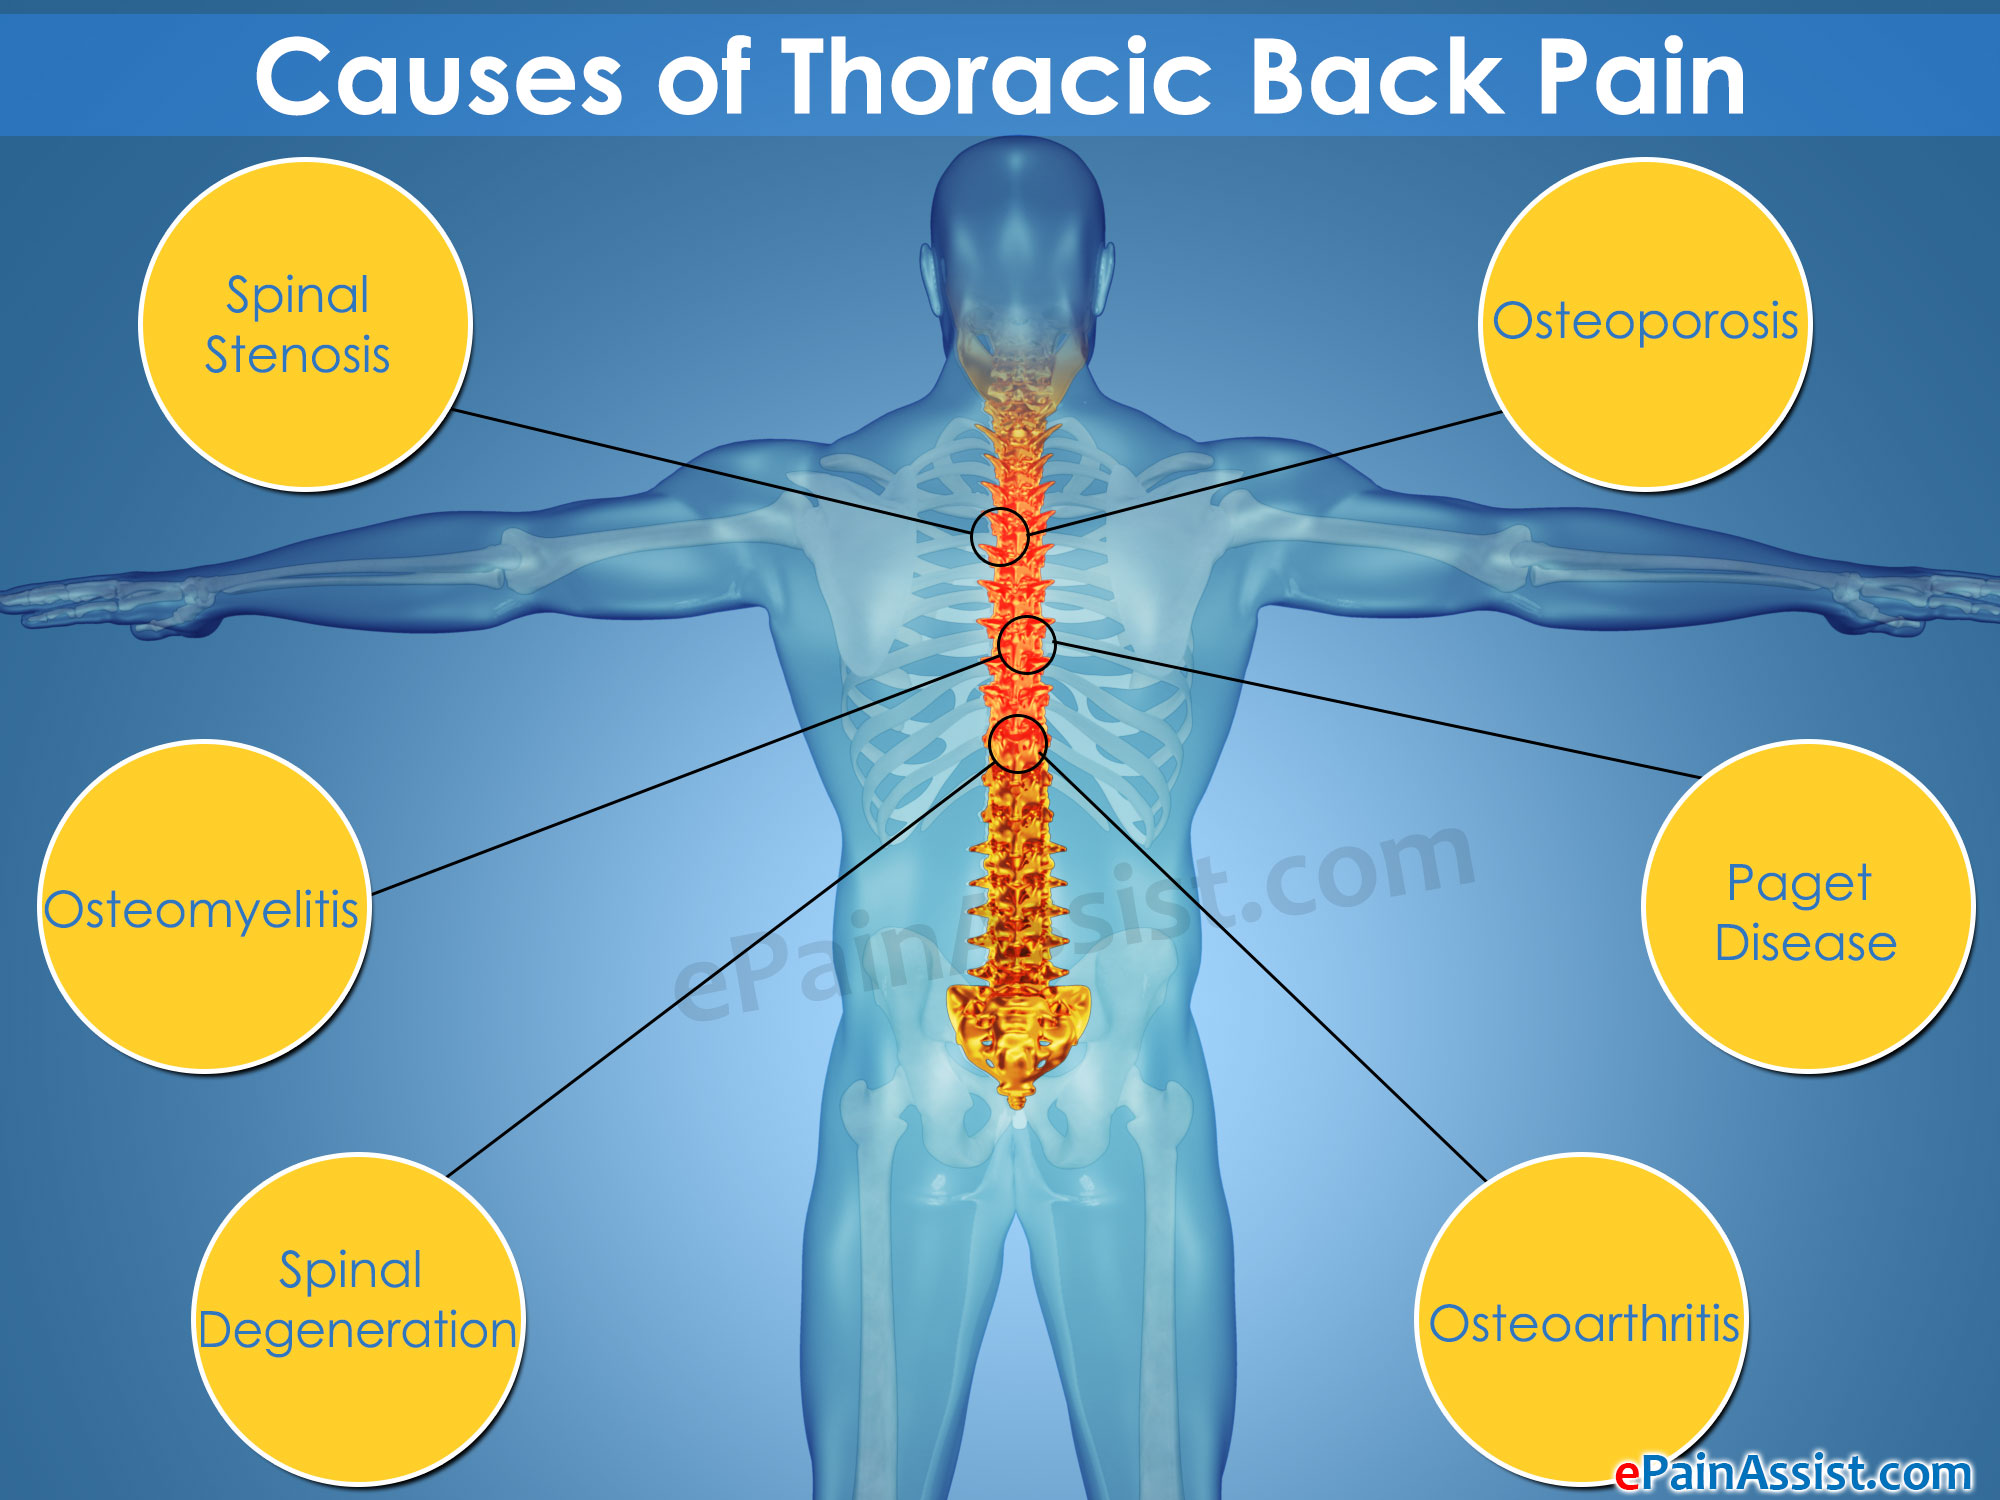 Causes of Thoracic Back Pain